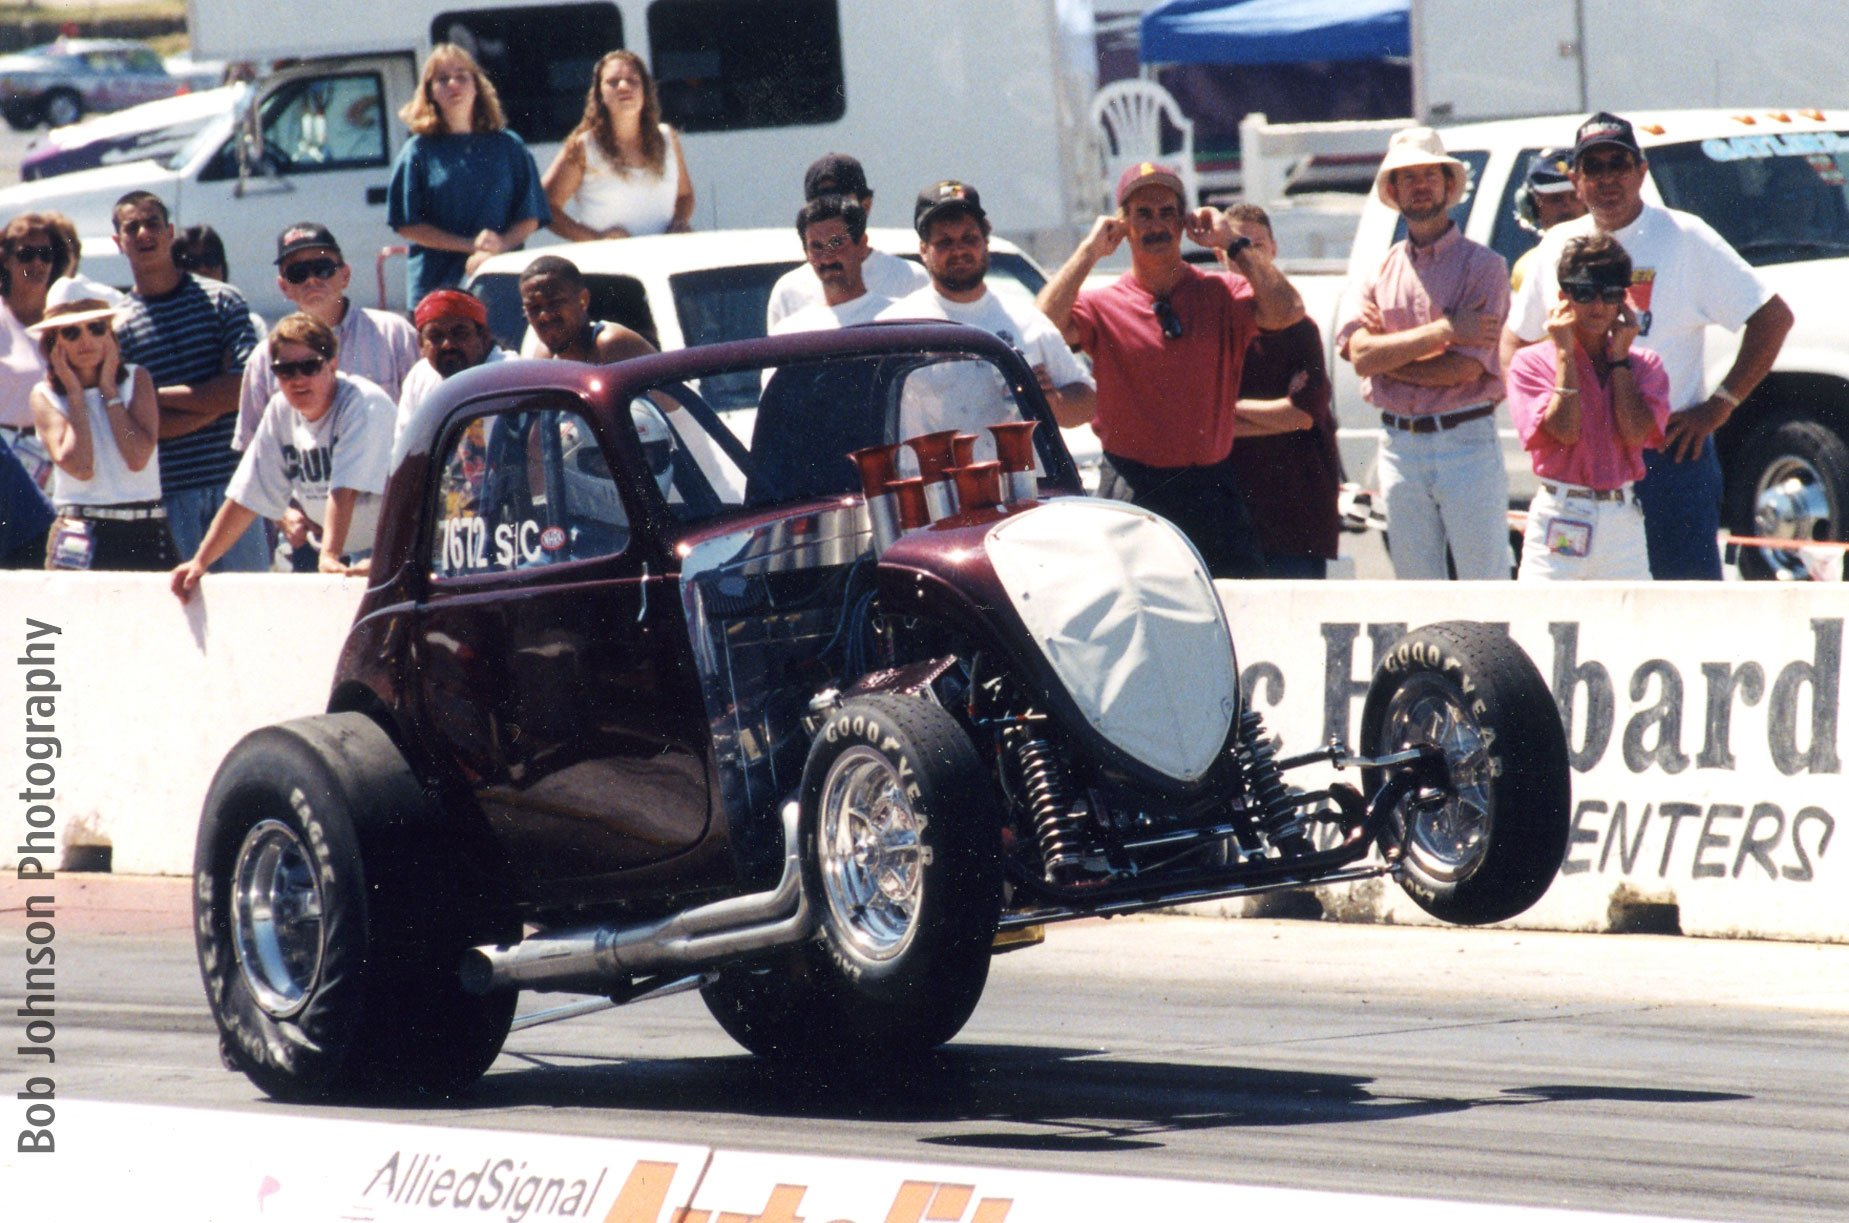 "Sears Point circa 1997-'98: The car following Roger Lamb's modifications. Its major specifications were as follows: 454 Crate LS-6 engine with stock crank, block, pistons and rods, minor head work, cam and injectors on alcohol. Two-speed Powerglide and Ford 9in. rear end.  Best time 8.52 at 153 mph. The car was raced for approximately 10 years both in competition and exhibition. Says Dave, ""It was retired to the NHRA Museum about 2004, which is where it remains. It was a fun ride!"""